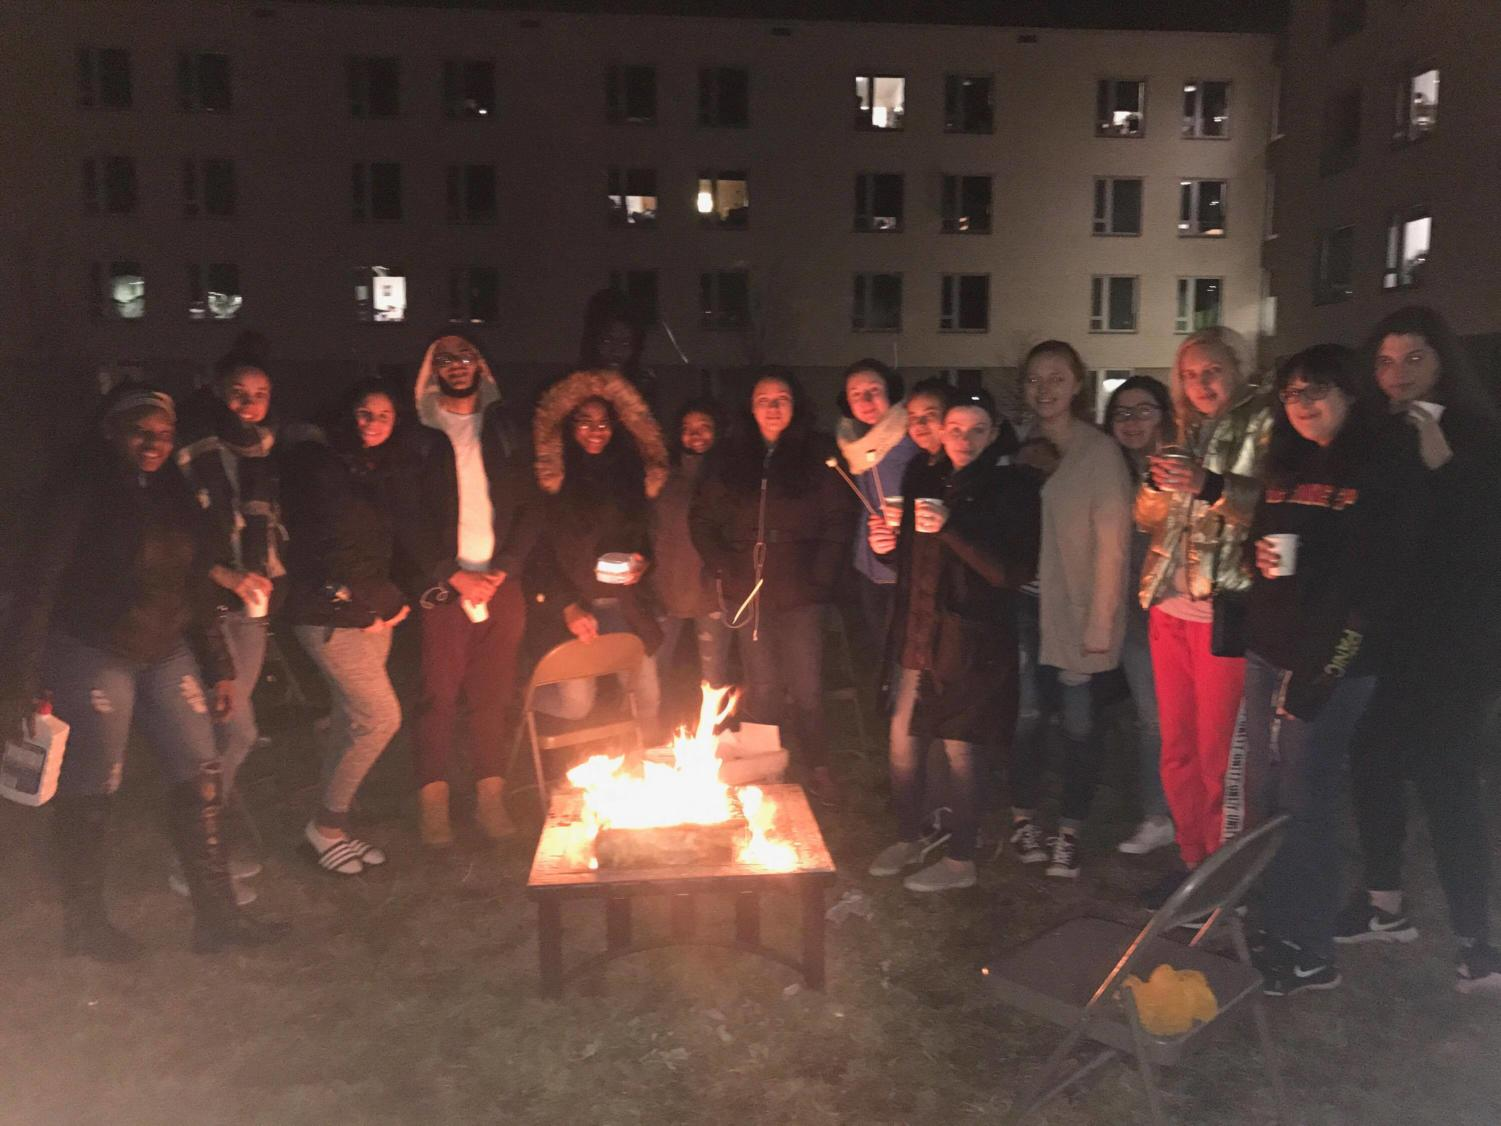 Students at High Definition's bonfire